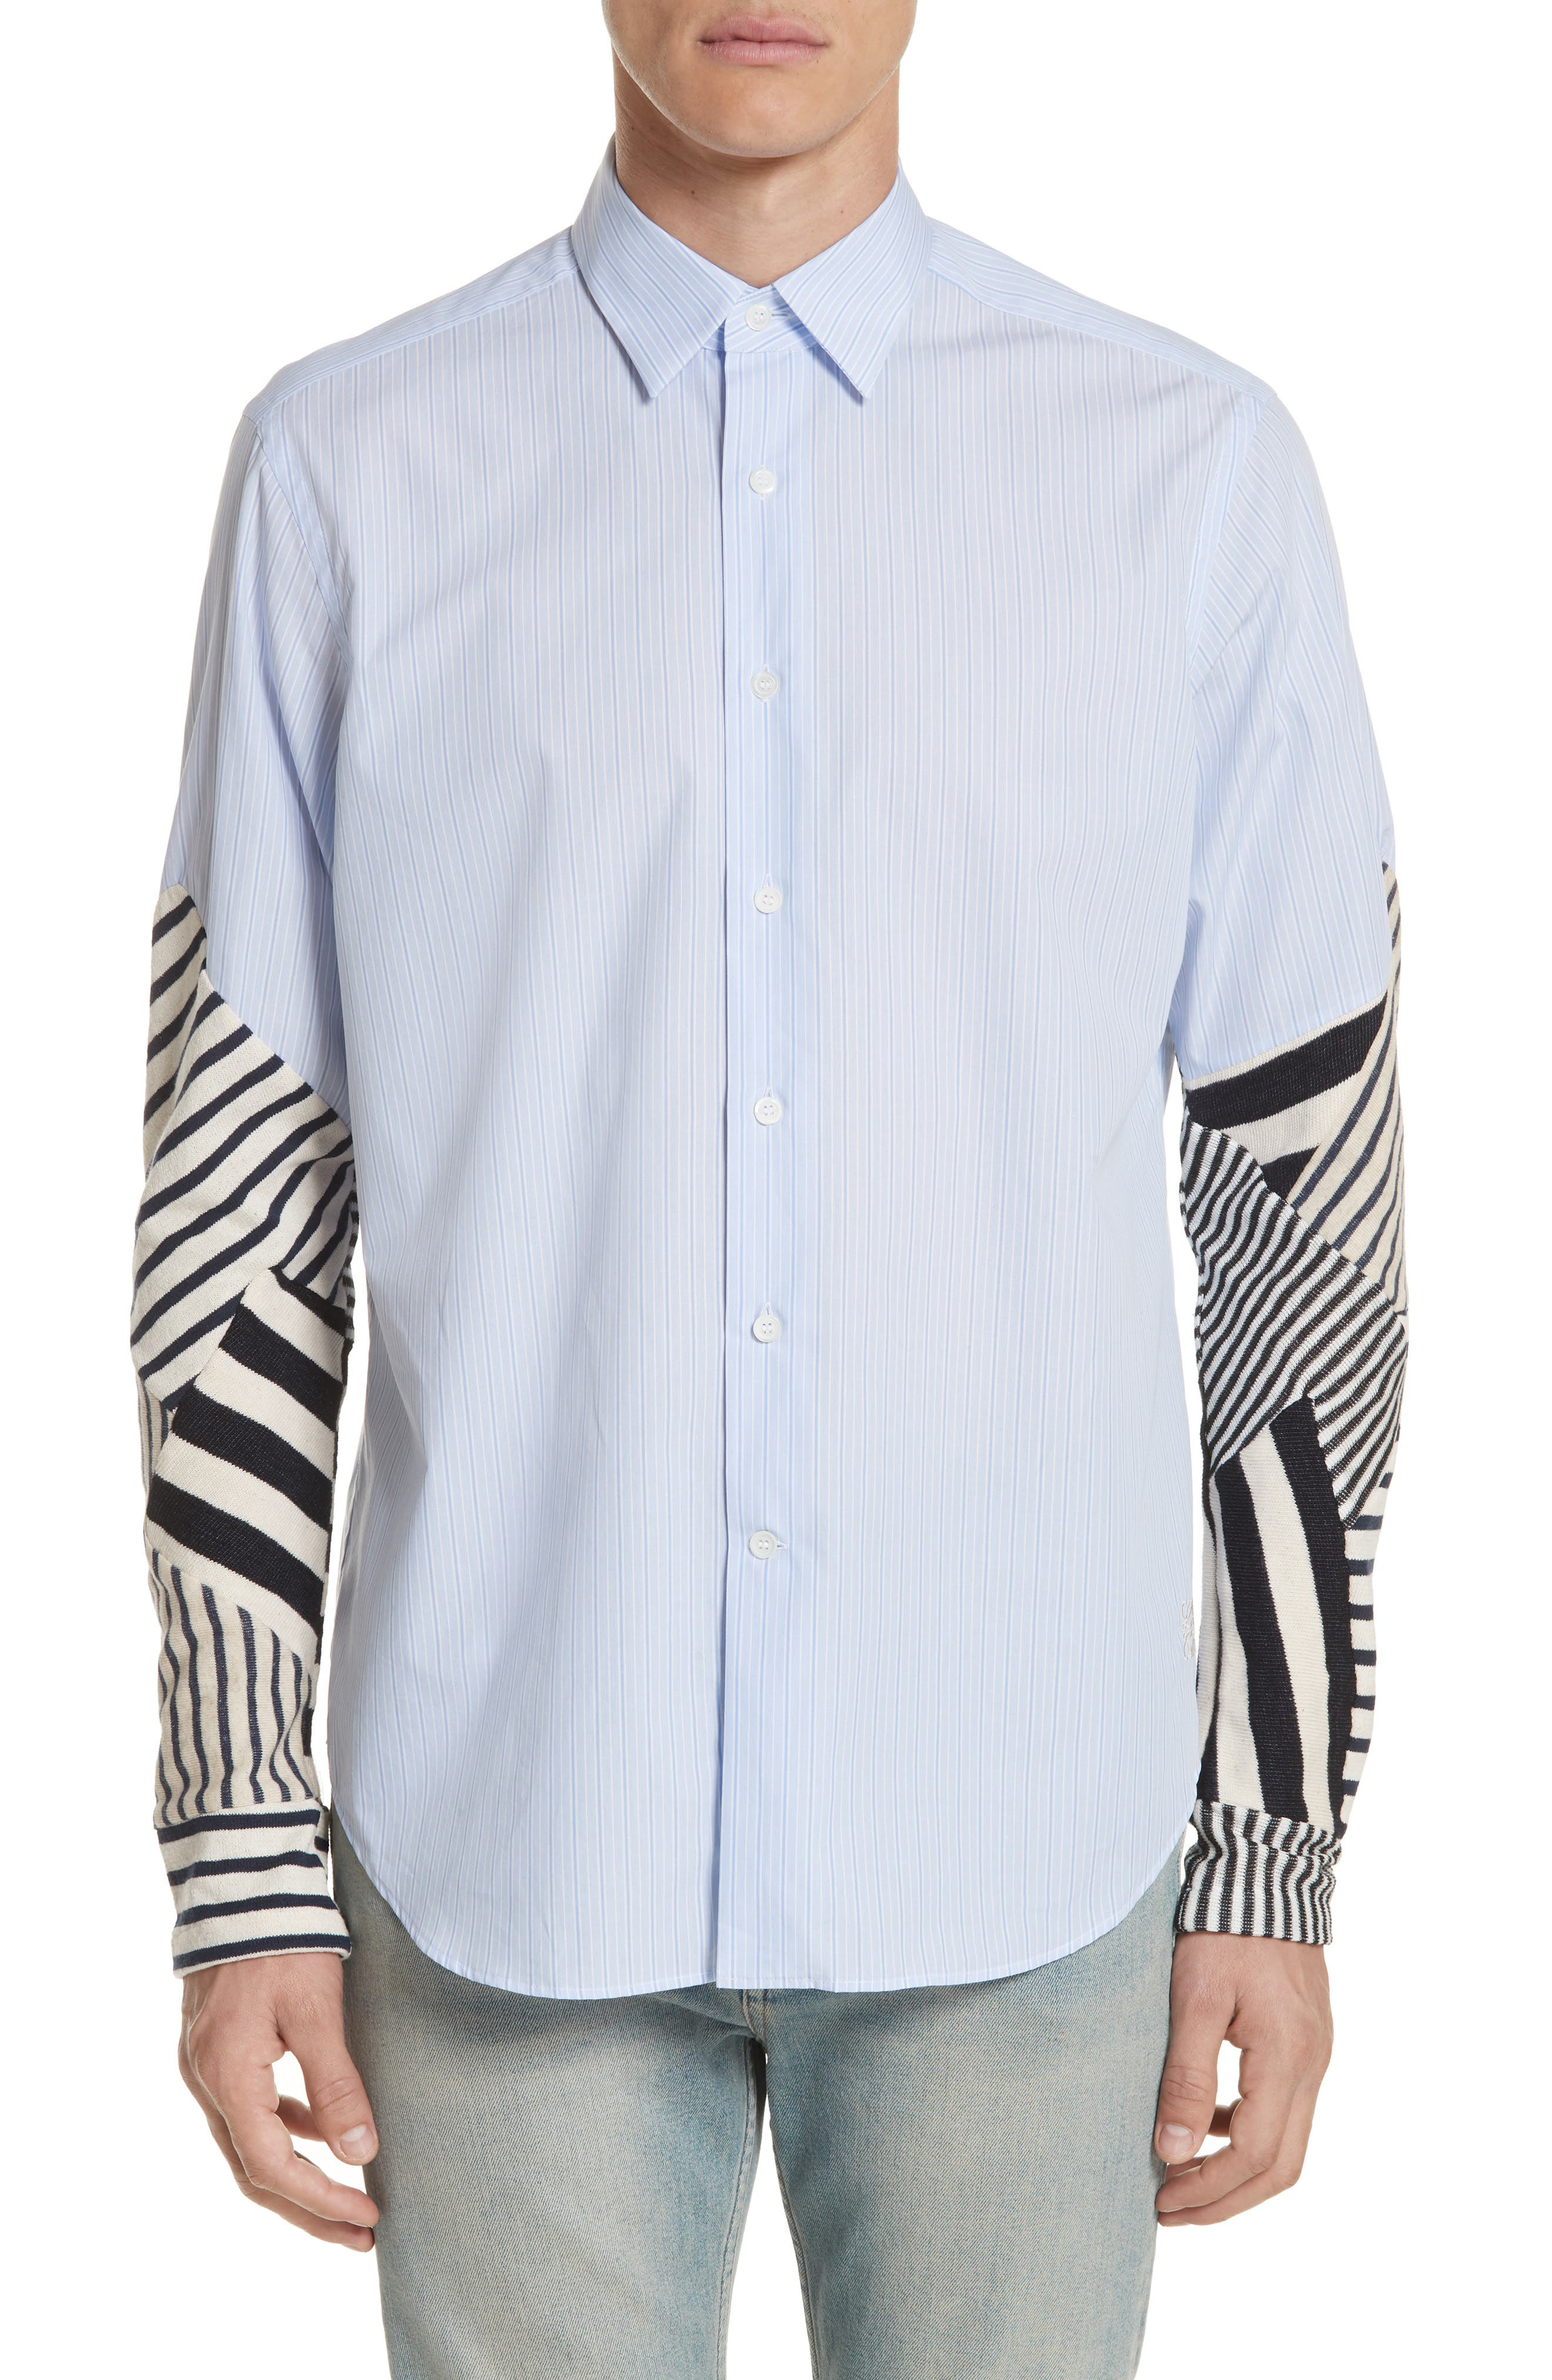 Patchwork Sleeve Shirt,                         Main,                         color, White/ Blue